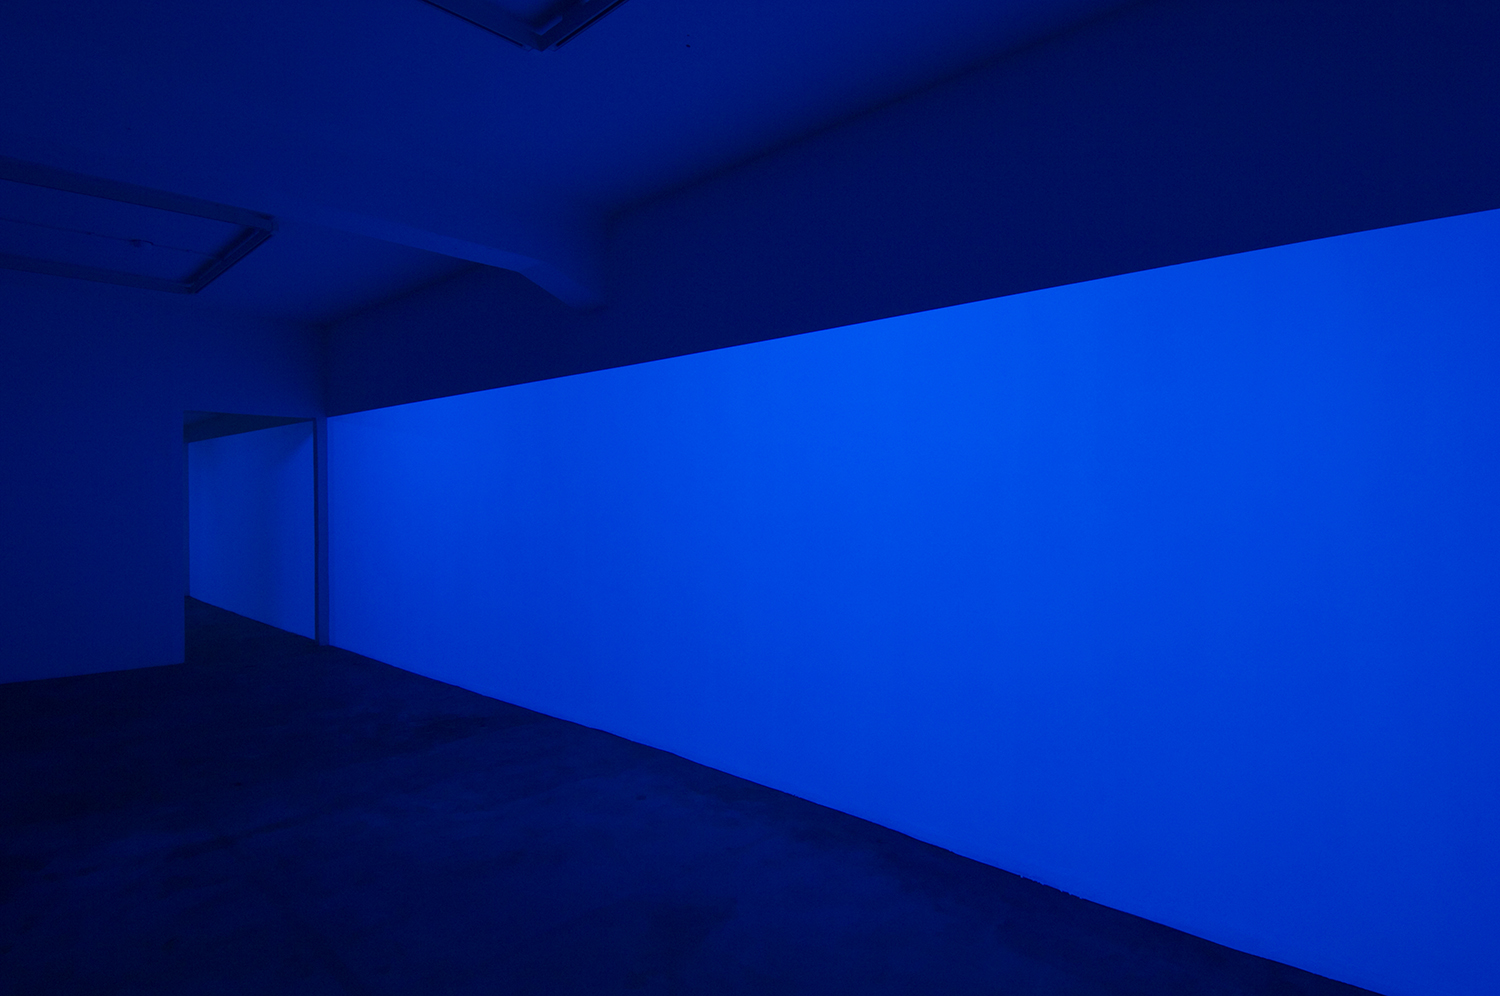 light work 2007#01<br>acrylic gauche, black light, 227 × 1447 cm, 2007